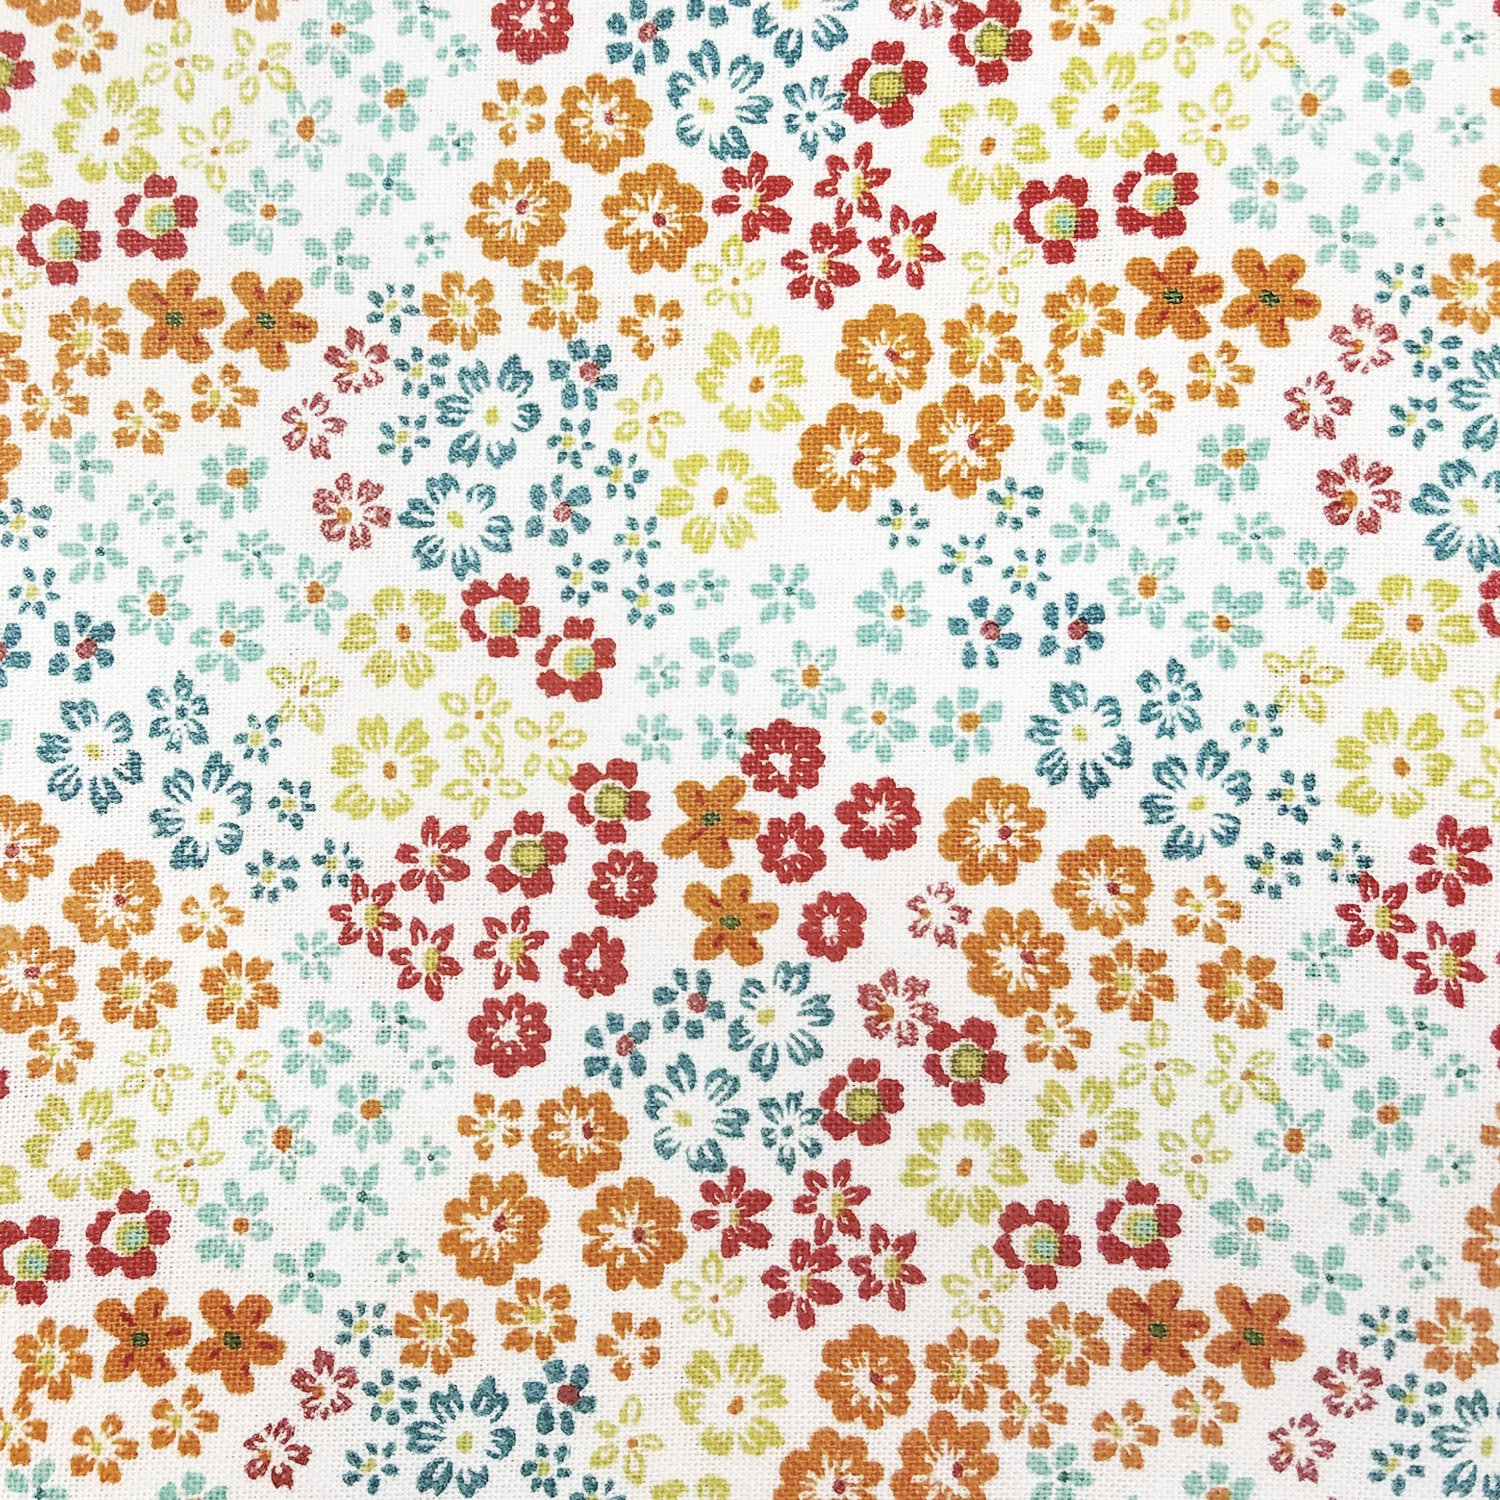 Fabric Palette Fat Quarter <br>White - Design may vary <br>MD-G-PC362